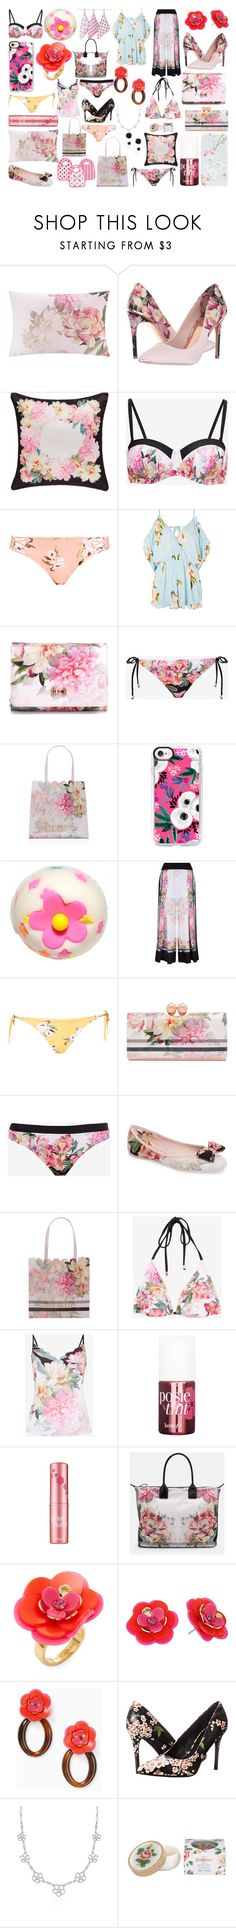 """""""A pocket full of posies."""" by brinsonkid ❤ liked on Polyvore featuring Ted Baker, Topshop, Casetify, Benefit, Aden + Anais, Kate Spade, Carlos by Carlos Santana, Ross-Simons and Cath Kidston"""